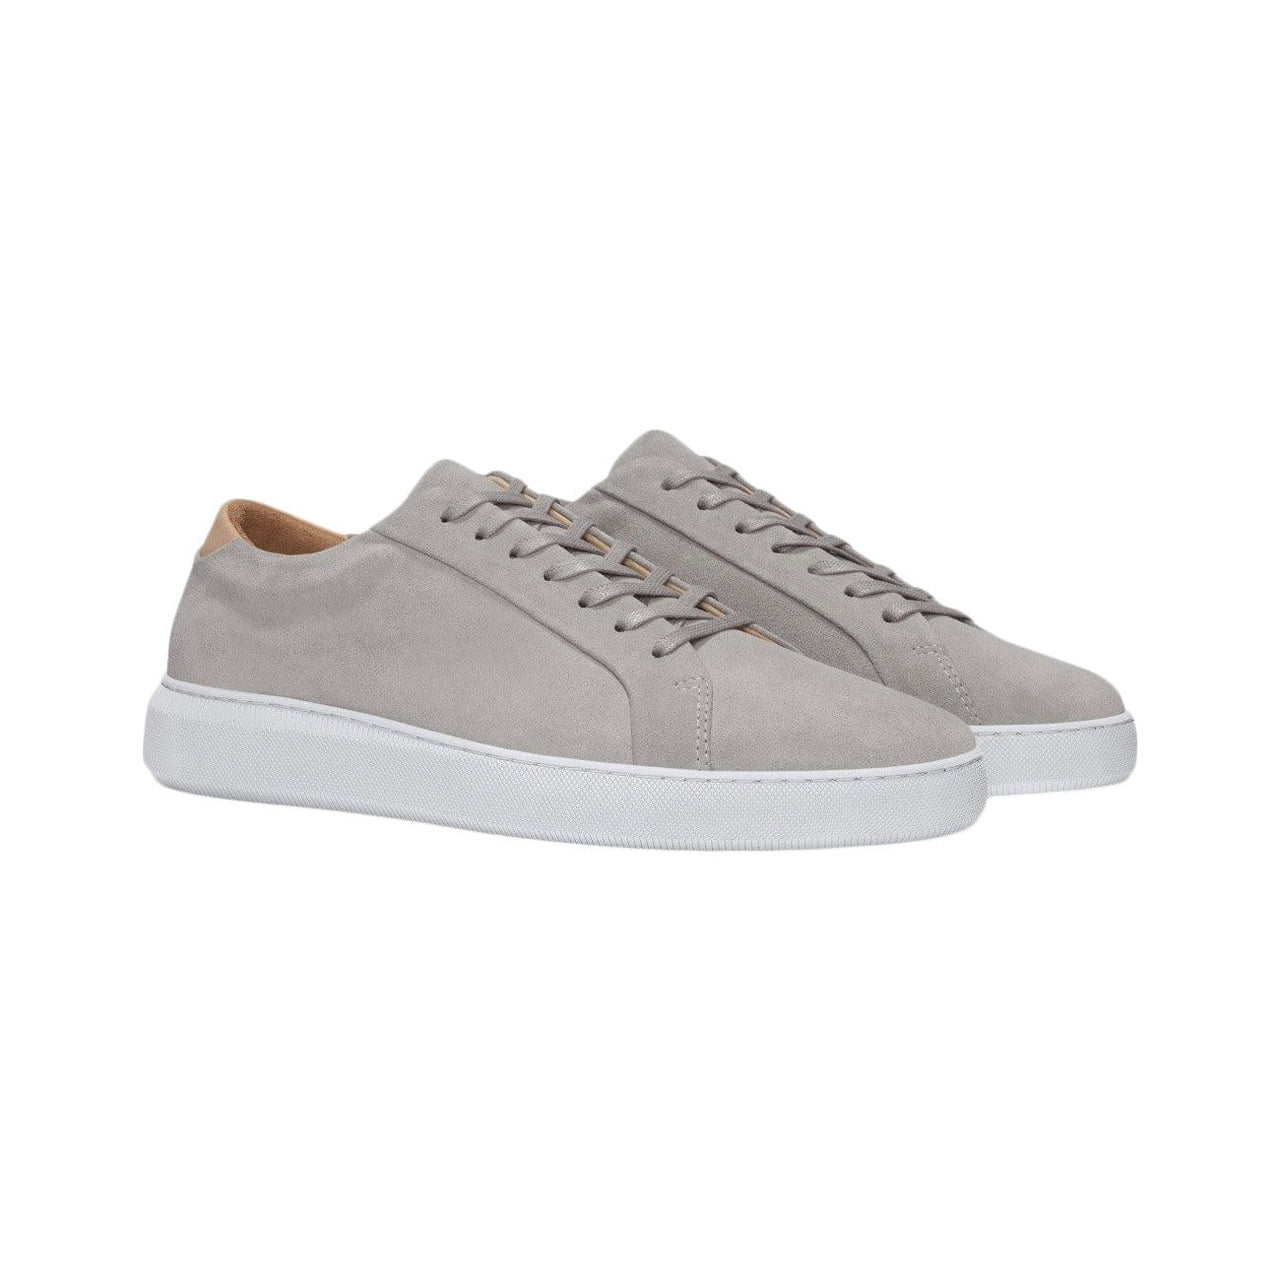 UNIFORM STANDARD Footwear Women's SERIES 8 Ghost Suede Sneaker